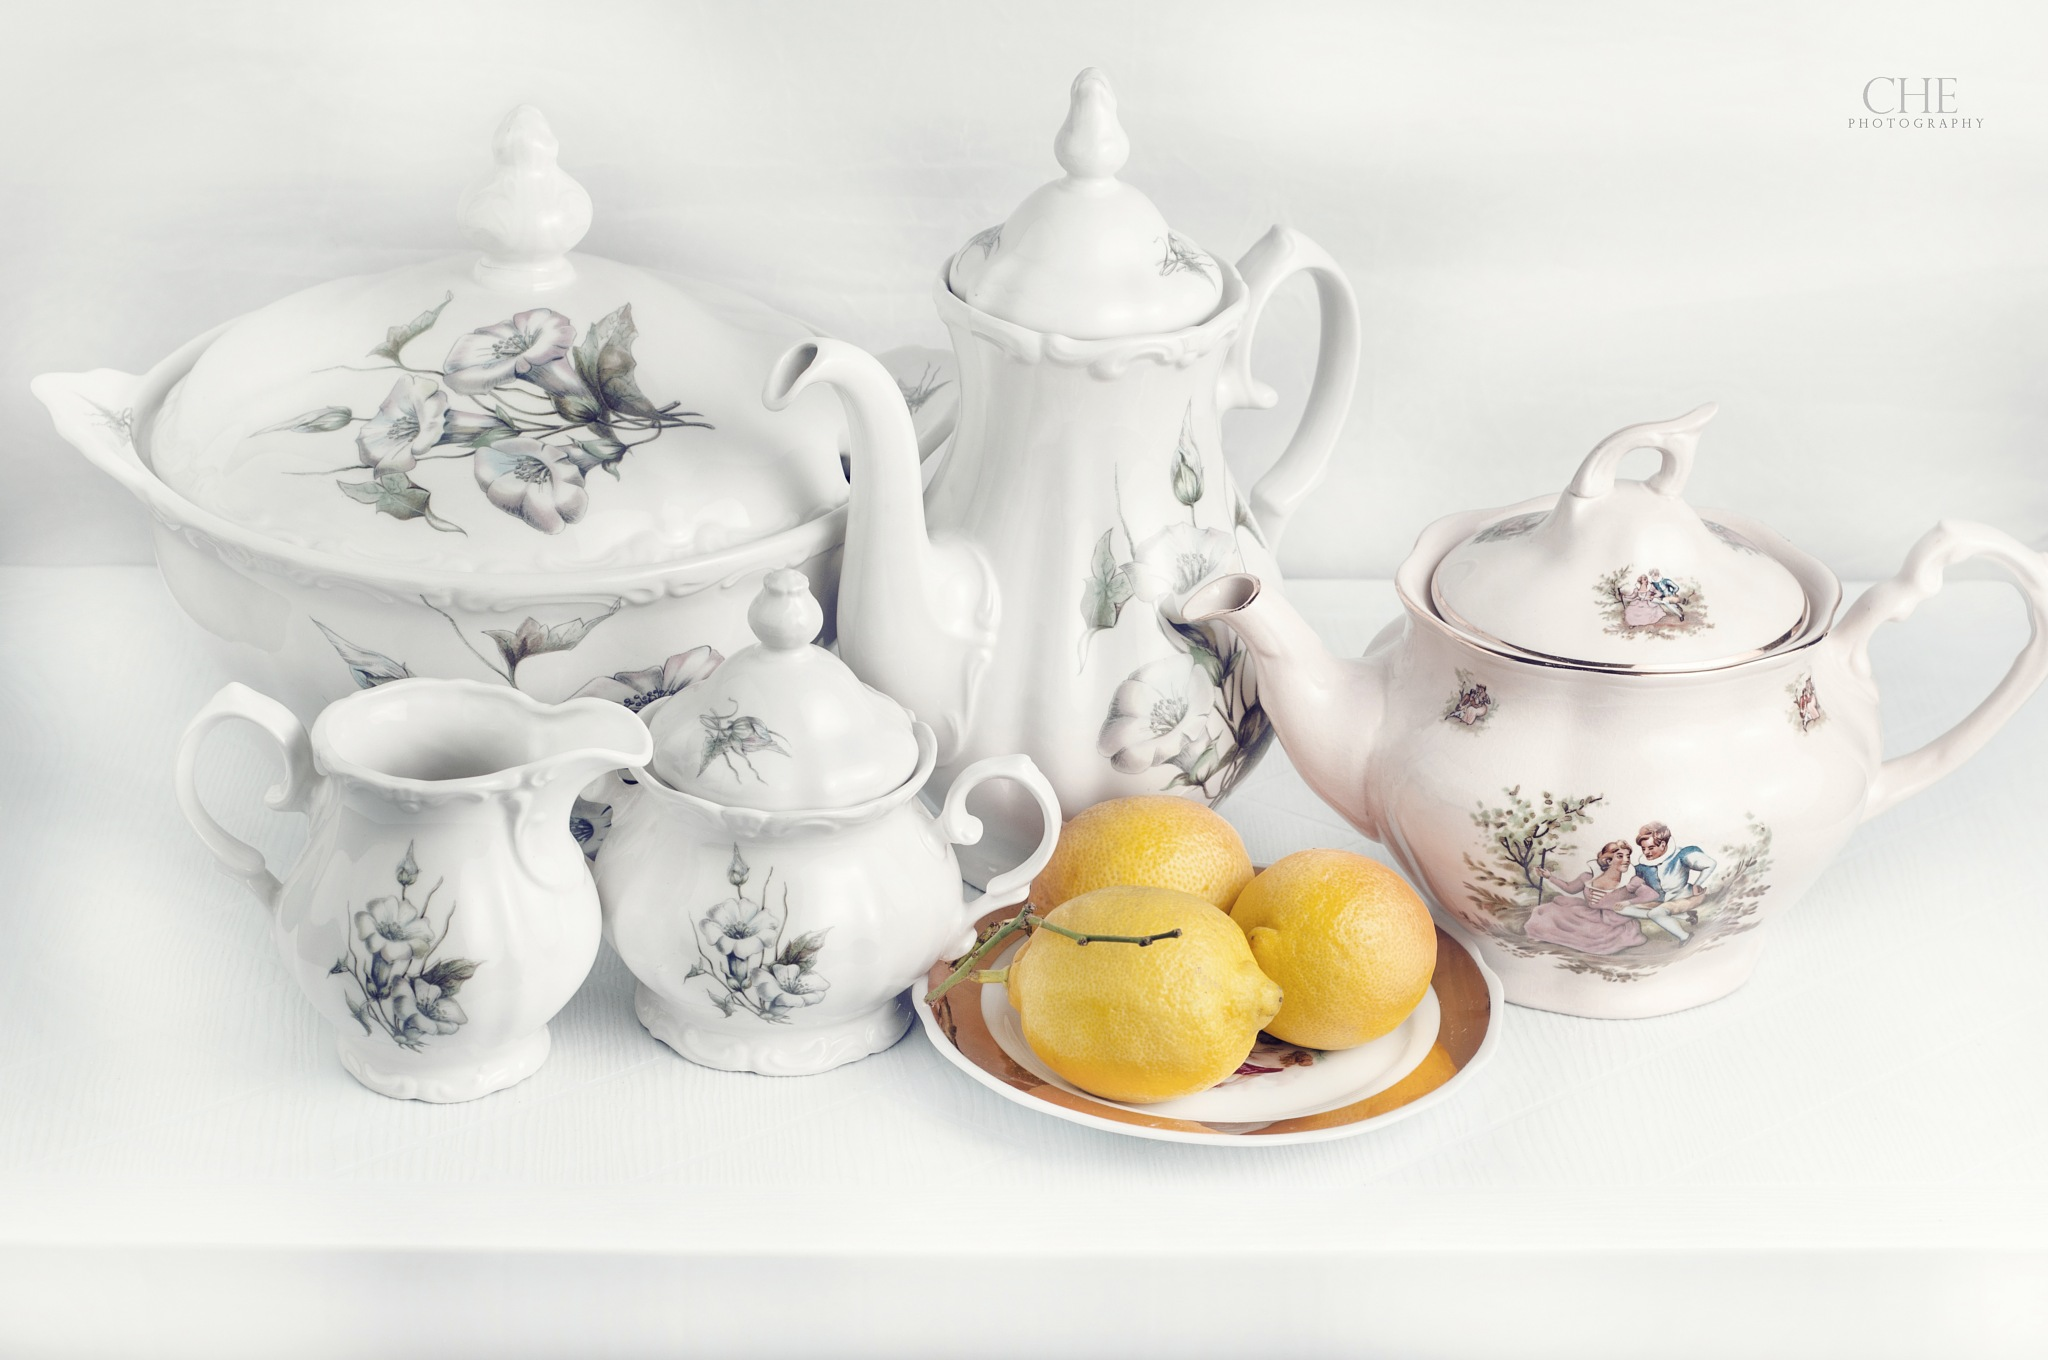 Tea by Che Youcef